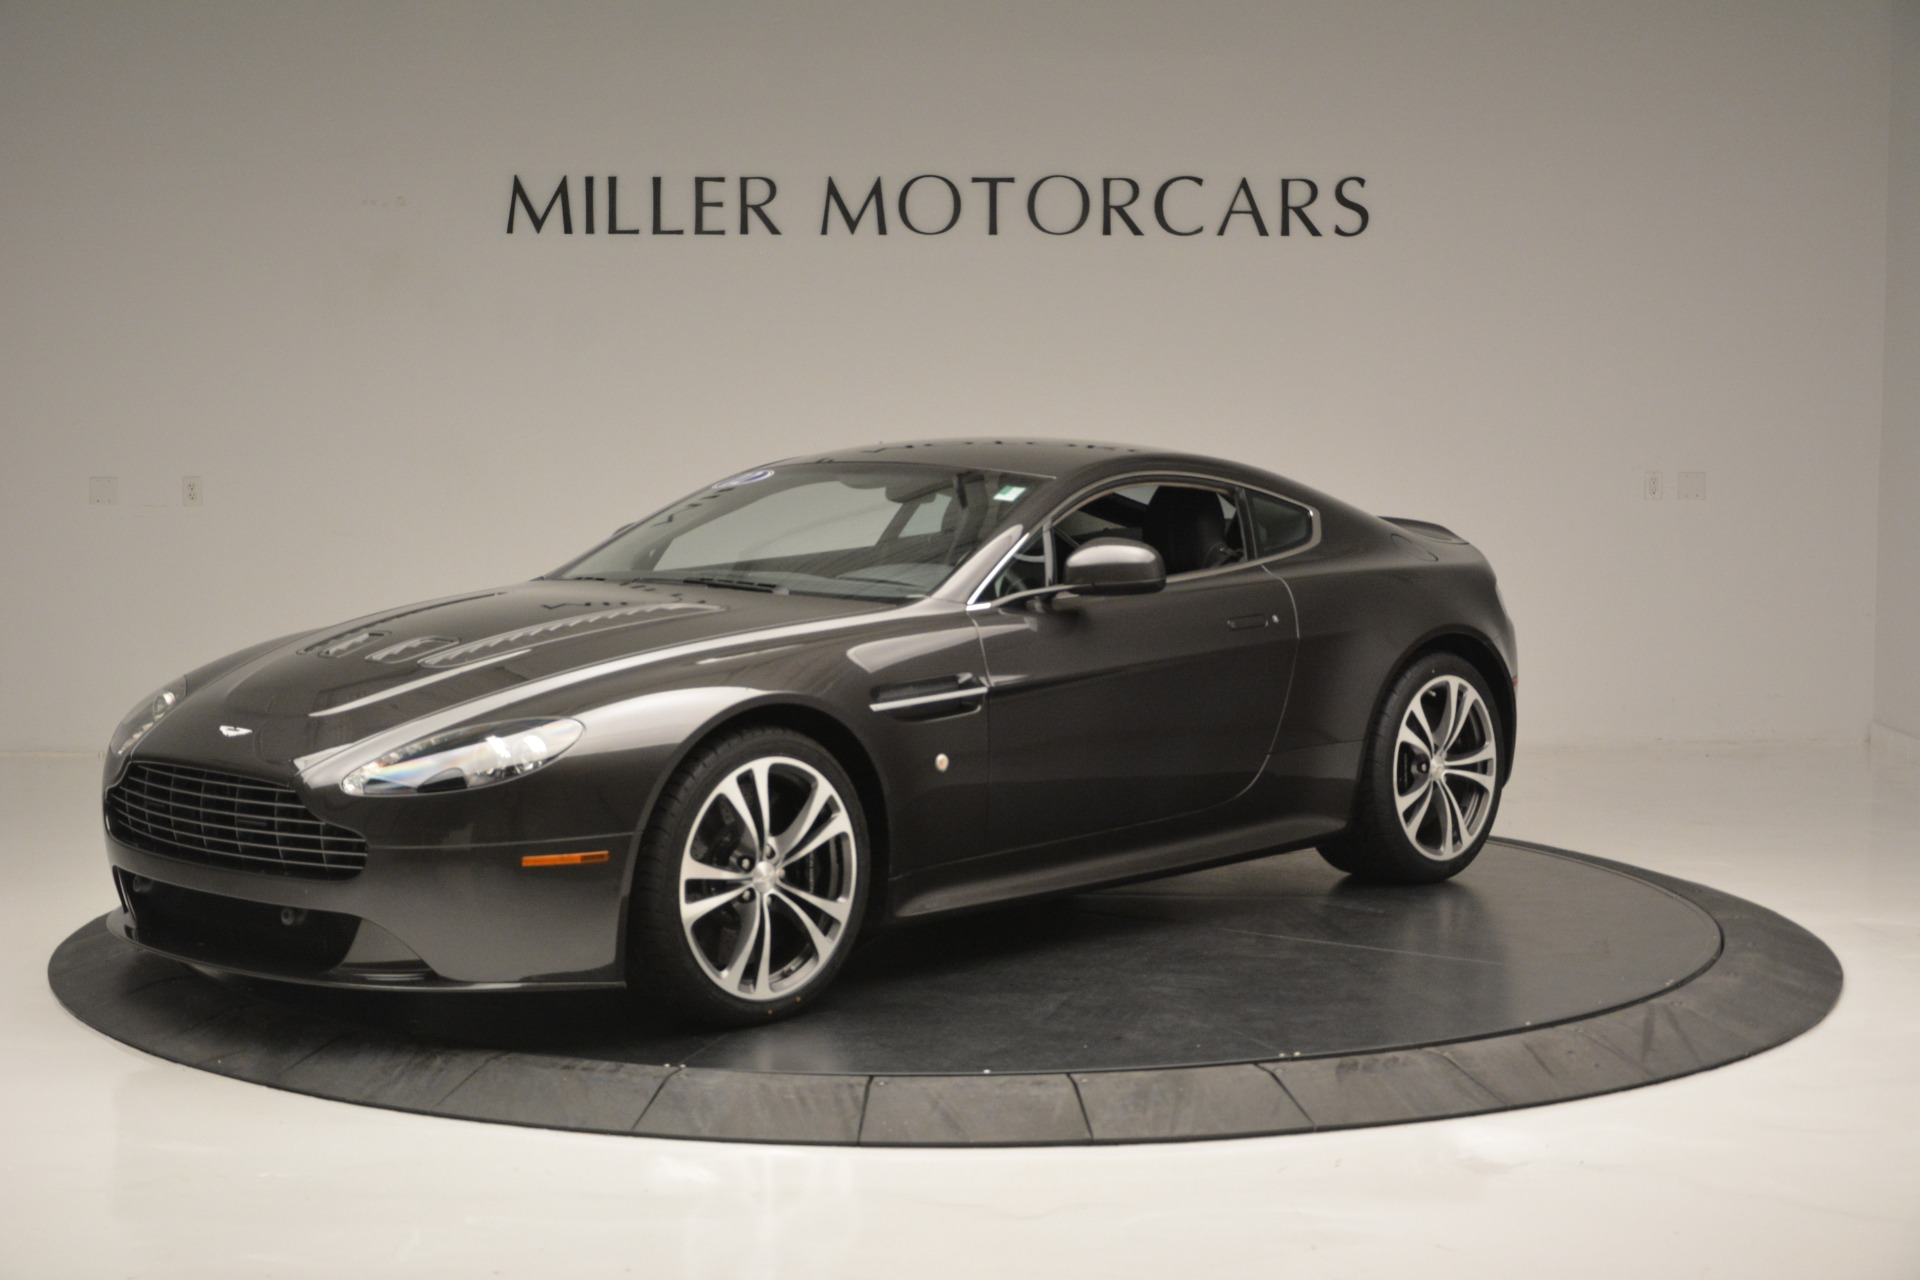 Used 2012 Aston Martin V12 Vantage Coupe for sale Sold at Maserati of Westport in Westport CT 06880 1